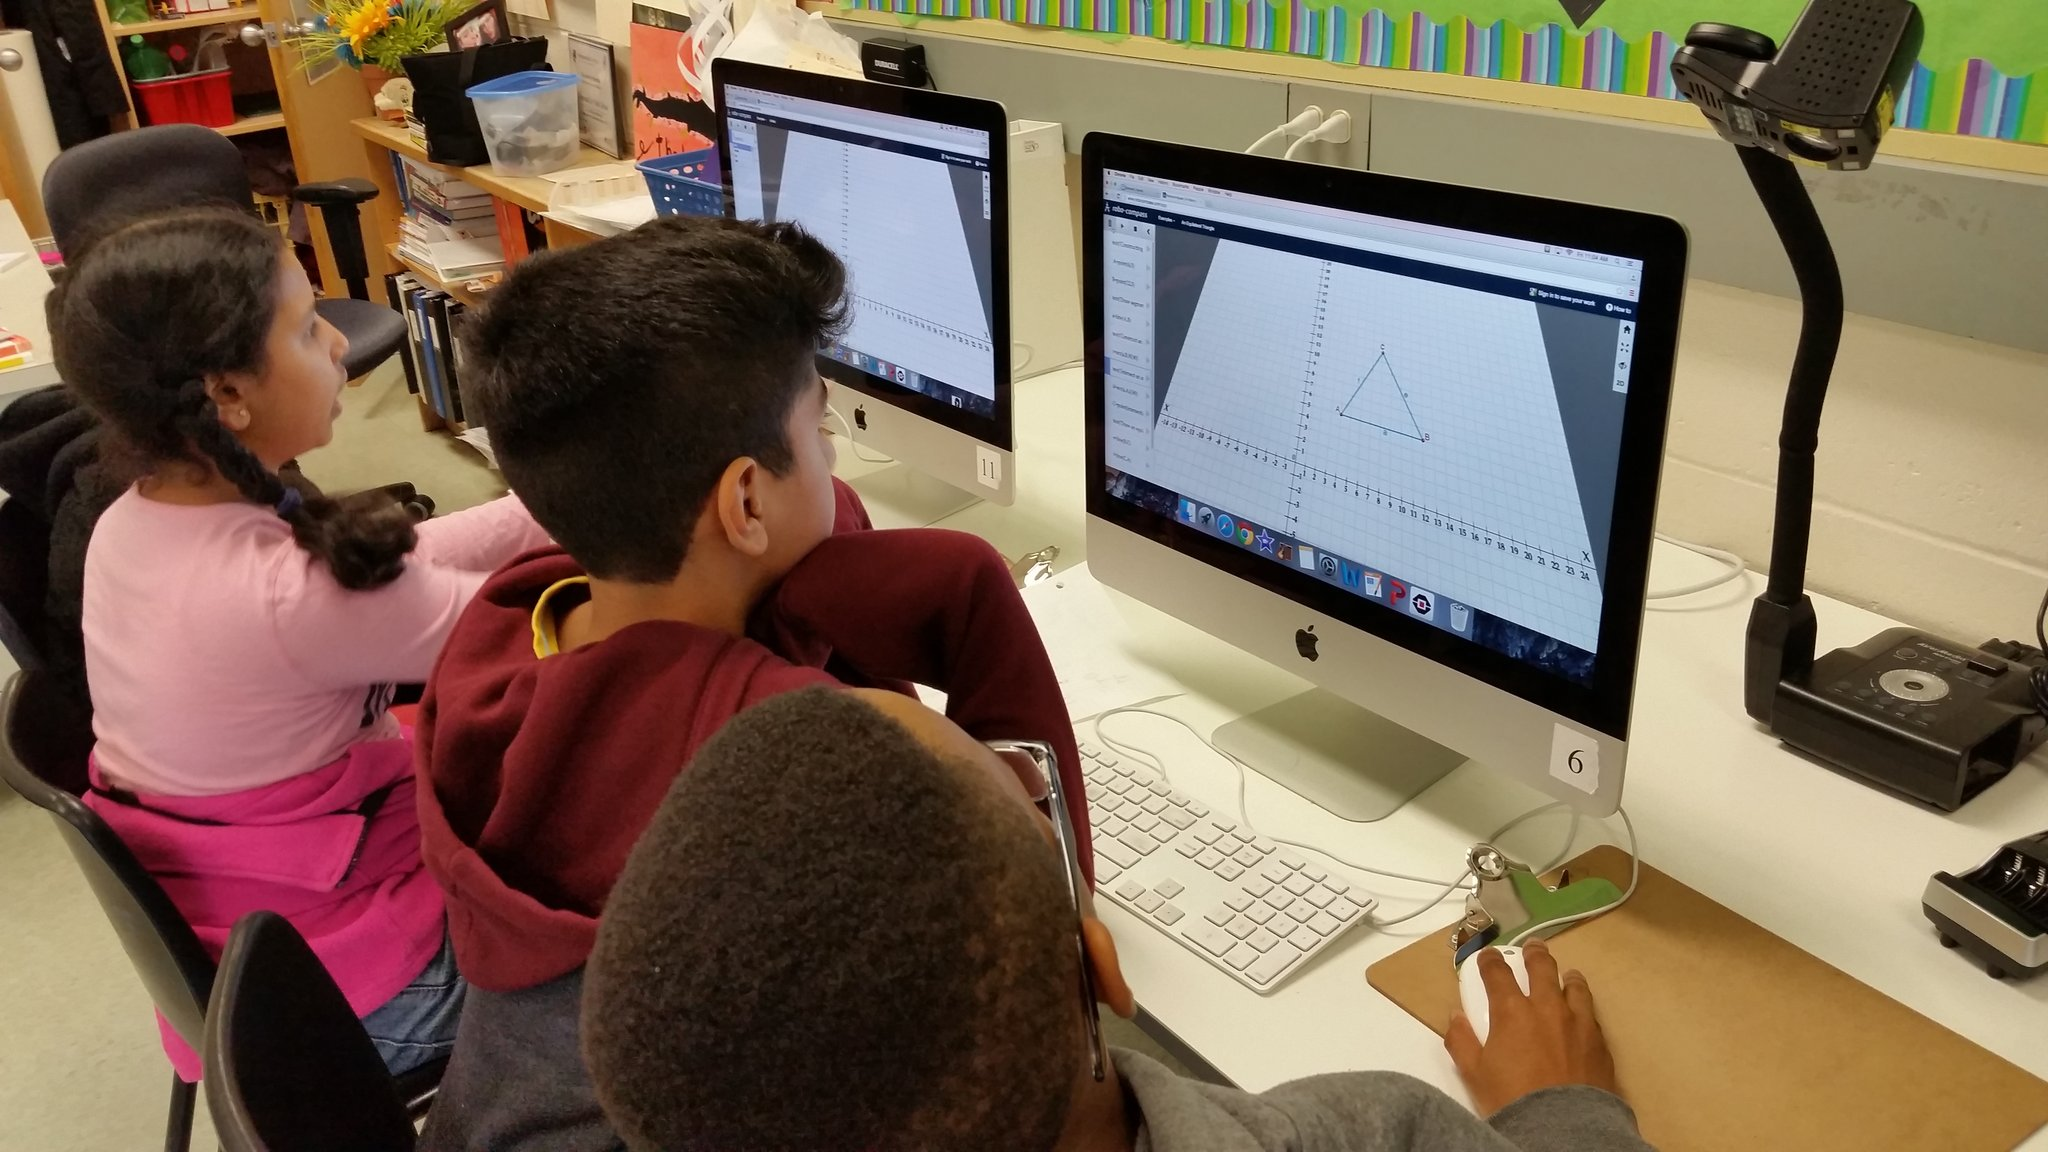 Exploring code and geometry using Robocompass